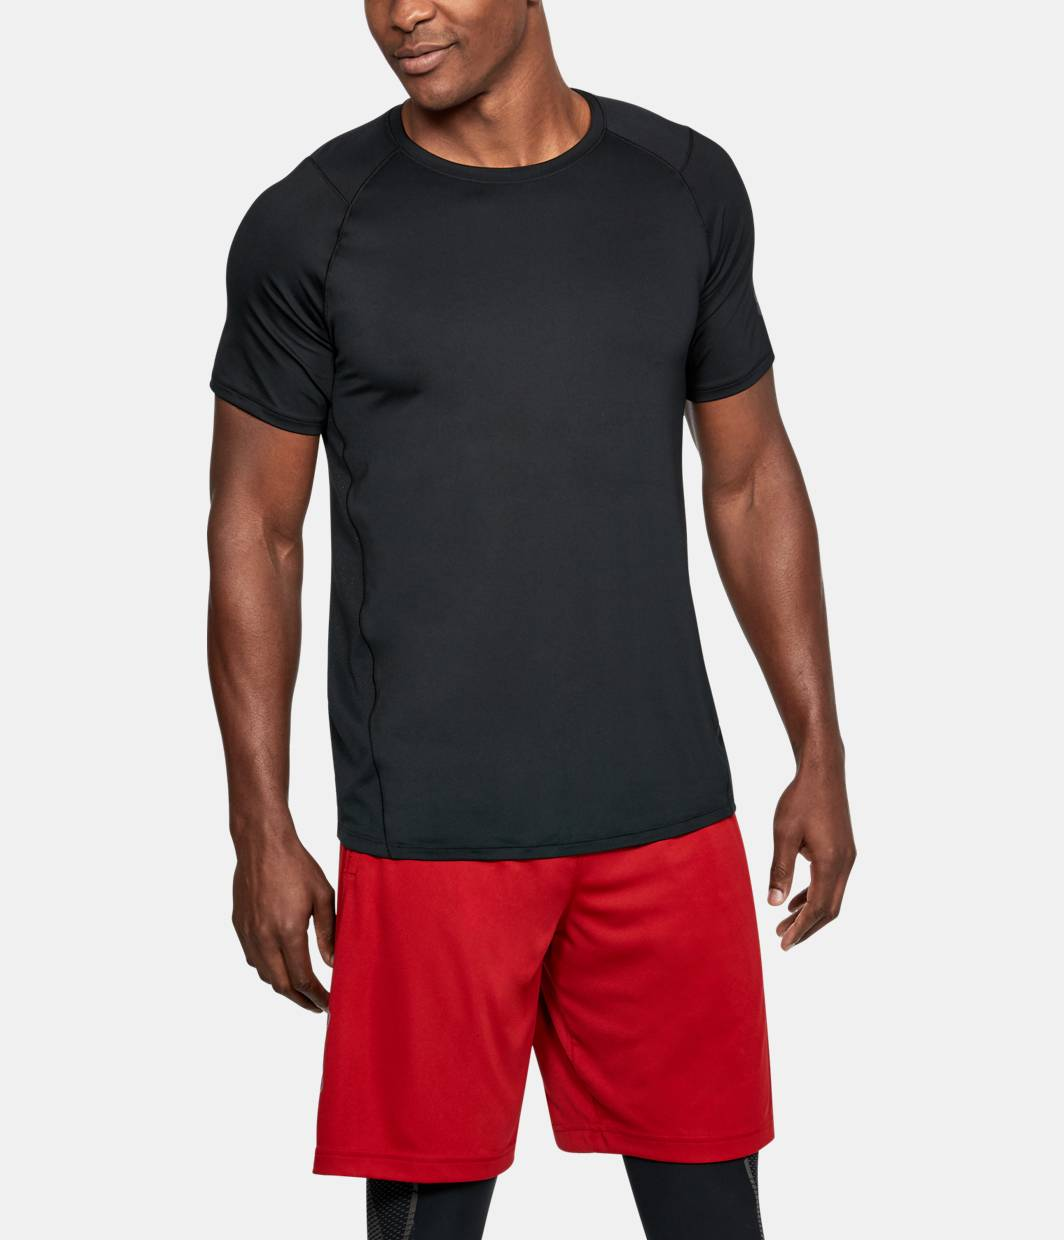 075e2f12 Men's Compression & Short Sleeve Shirts | Under Armour US